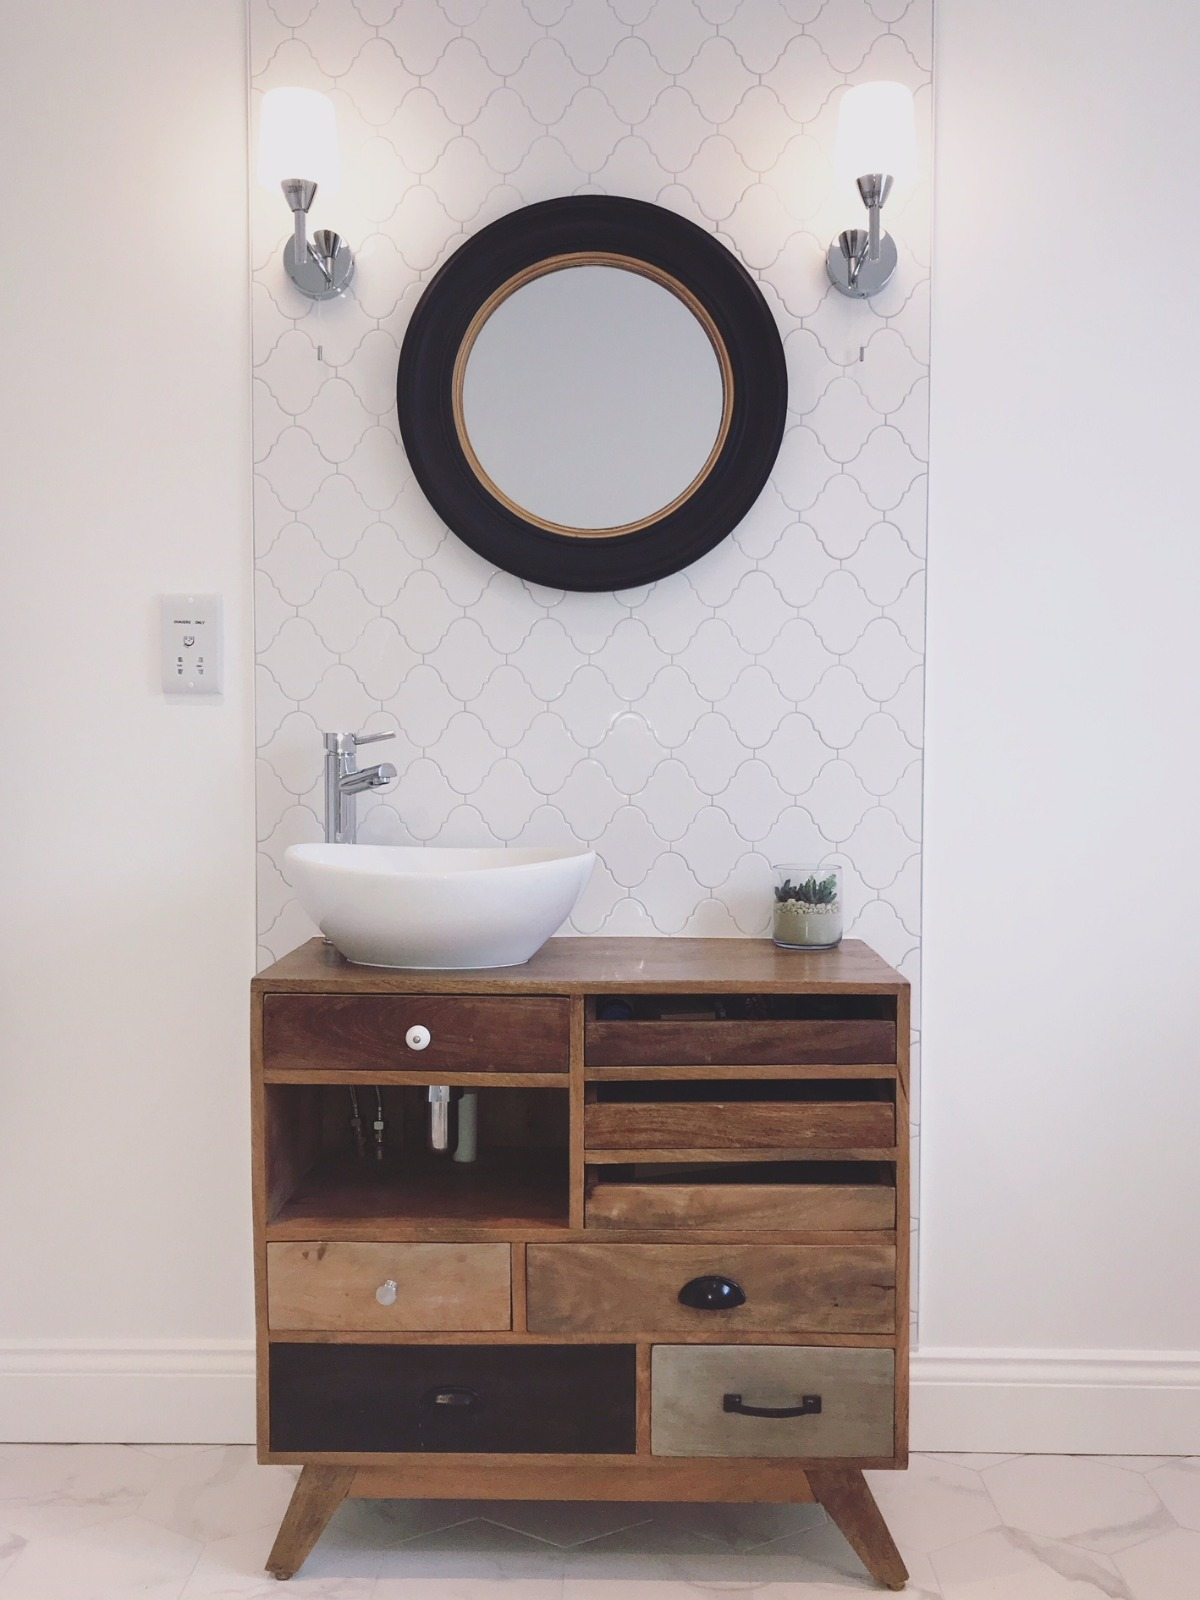 Bathroom Mirror Ideas - Pikalily Blog